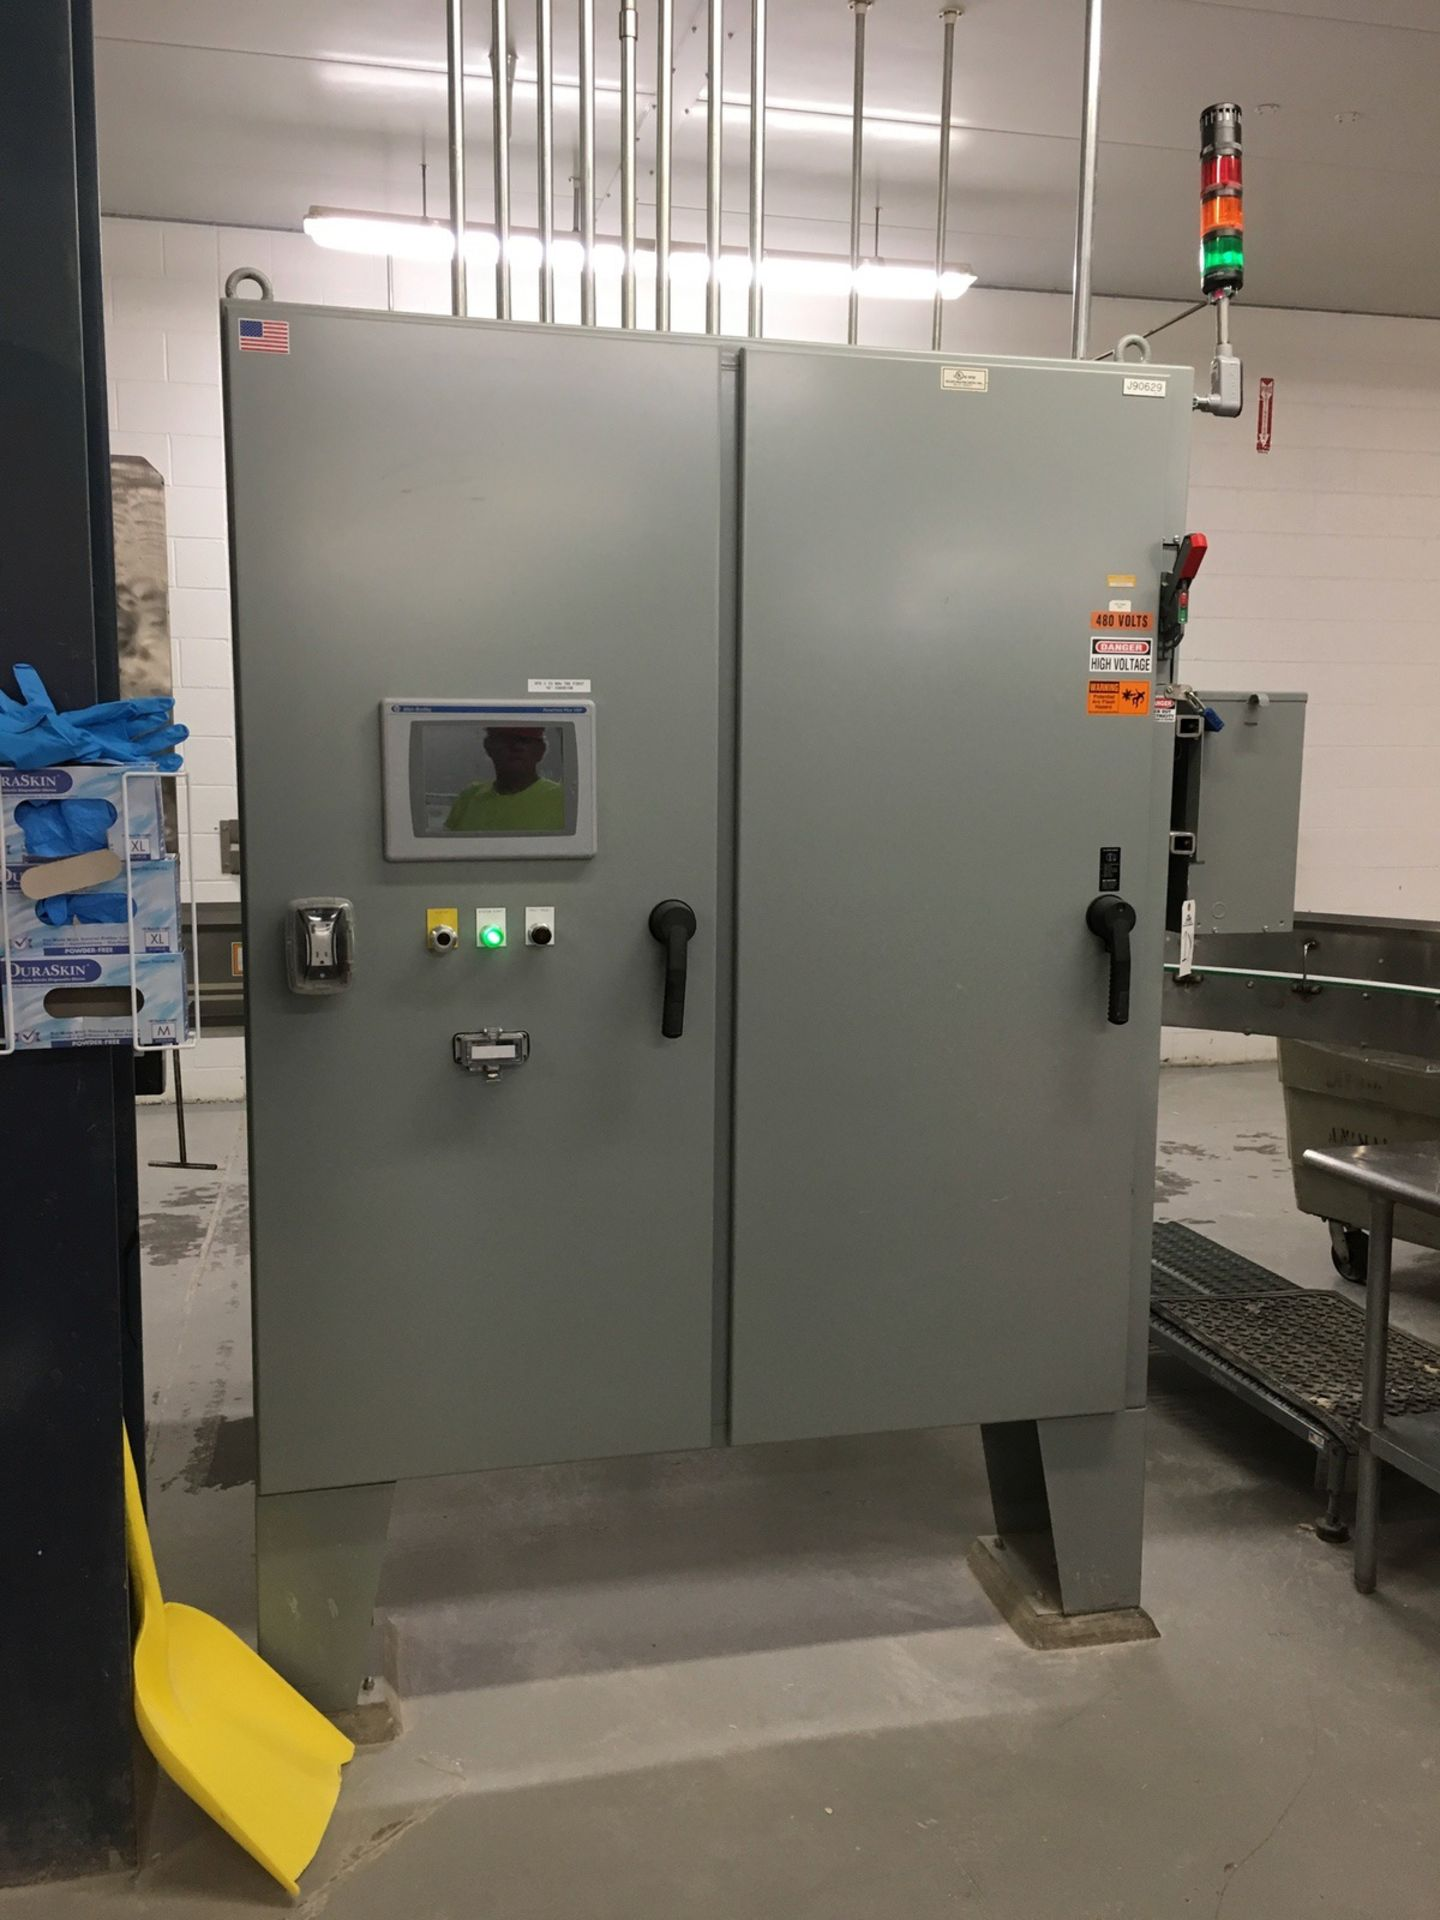 Lot 1Y - 2013 Conveyor Control Panel, VFDs, Allen Bradley PanelView Plus 1000 | Insp by Appt | Rig Fee: 350